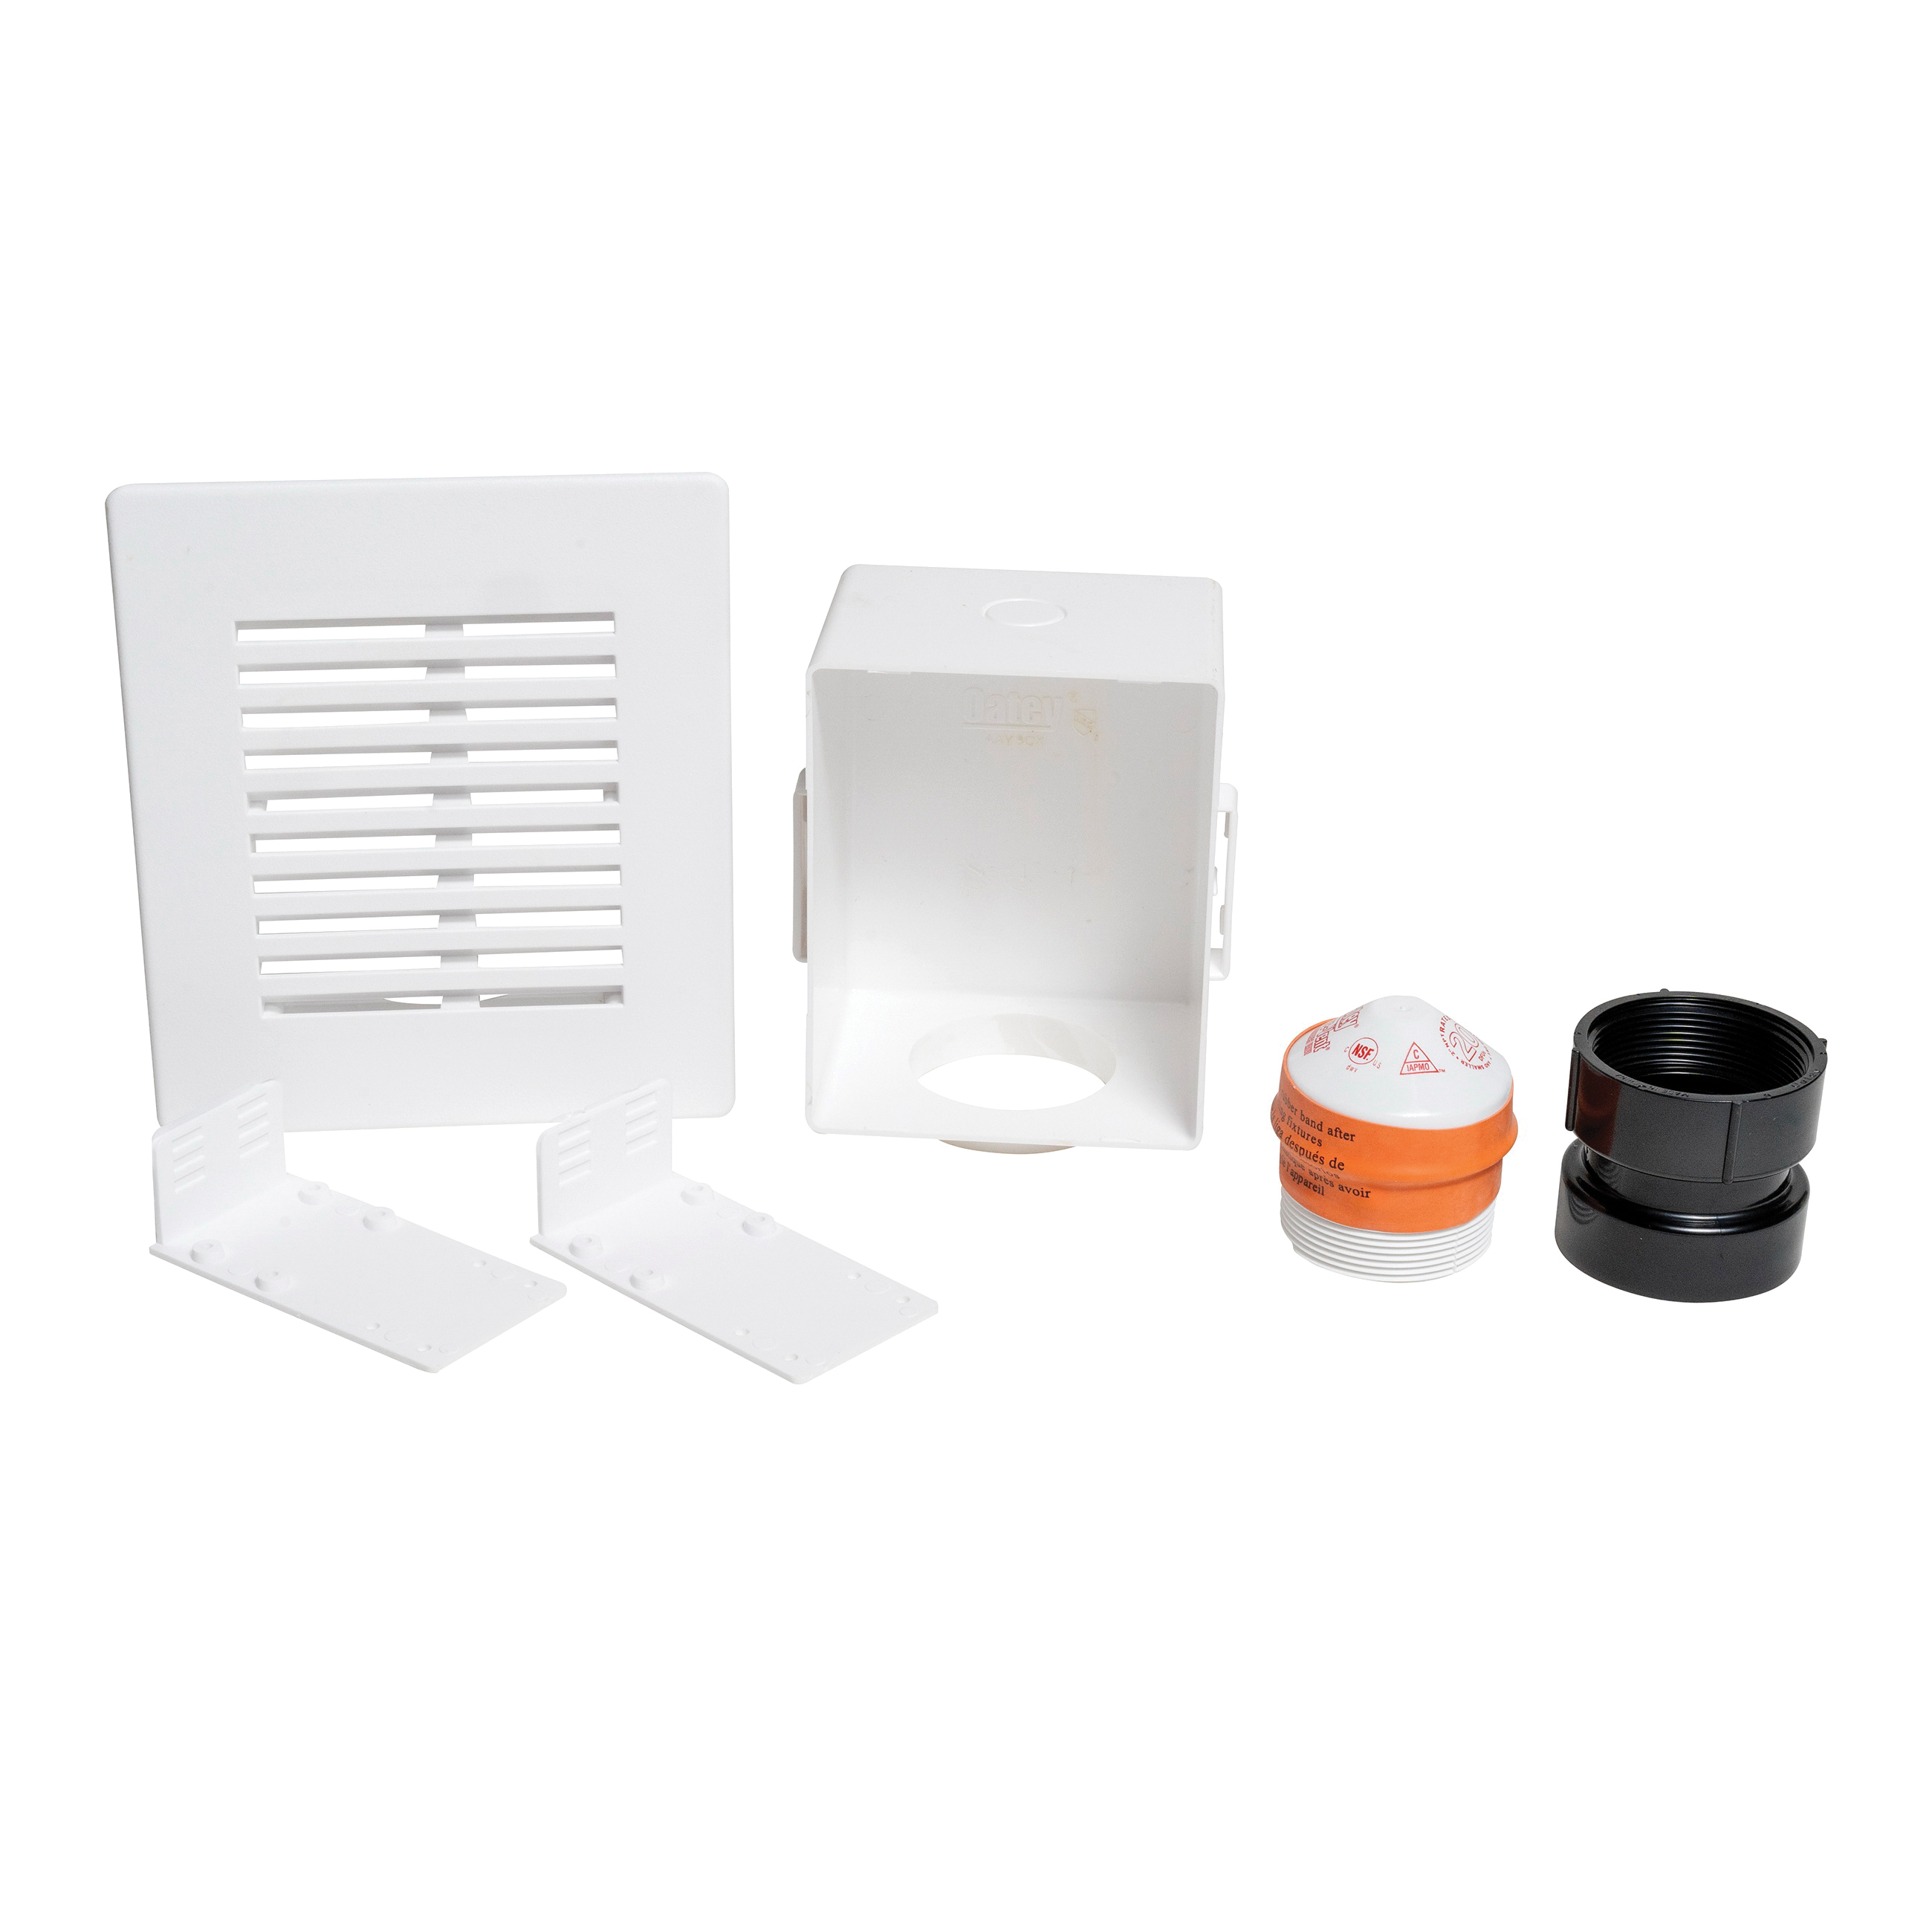 Oatey® Sure-Vent® 39263 Wall Box Kit With ABS Adapter and 20 DFU AAV, Polystyrene, Domestic